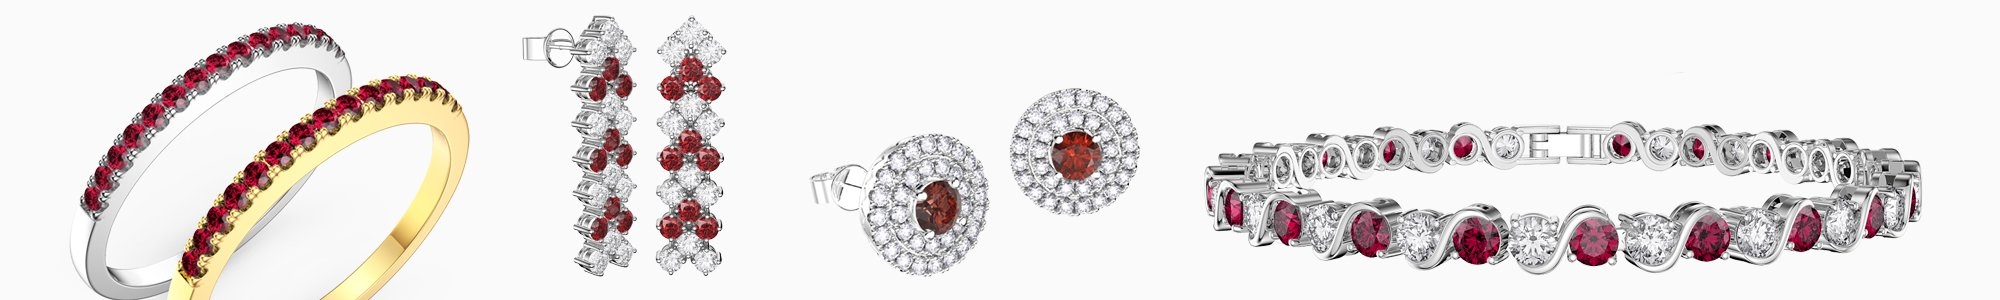 Ruby Jewelry - Wide Selection of Ruby Earrings, Pendants, Engagement Rings, Bracelets and Necklaces